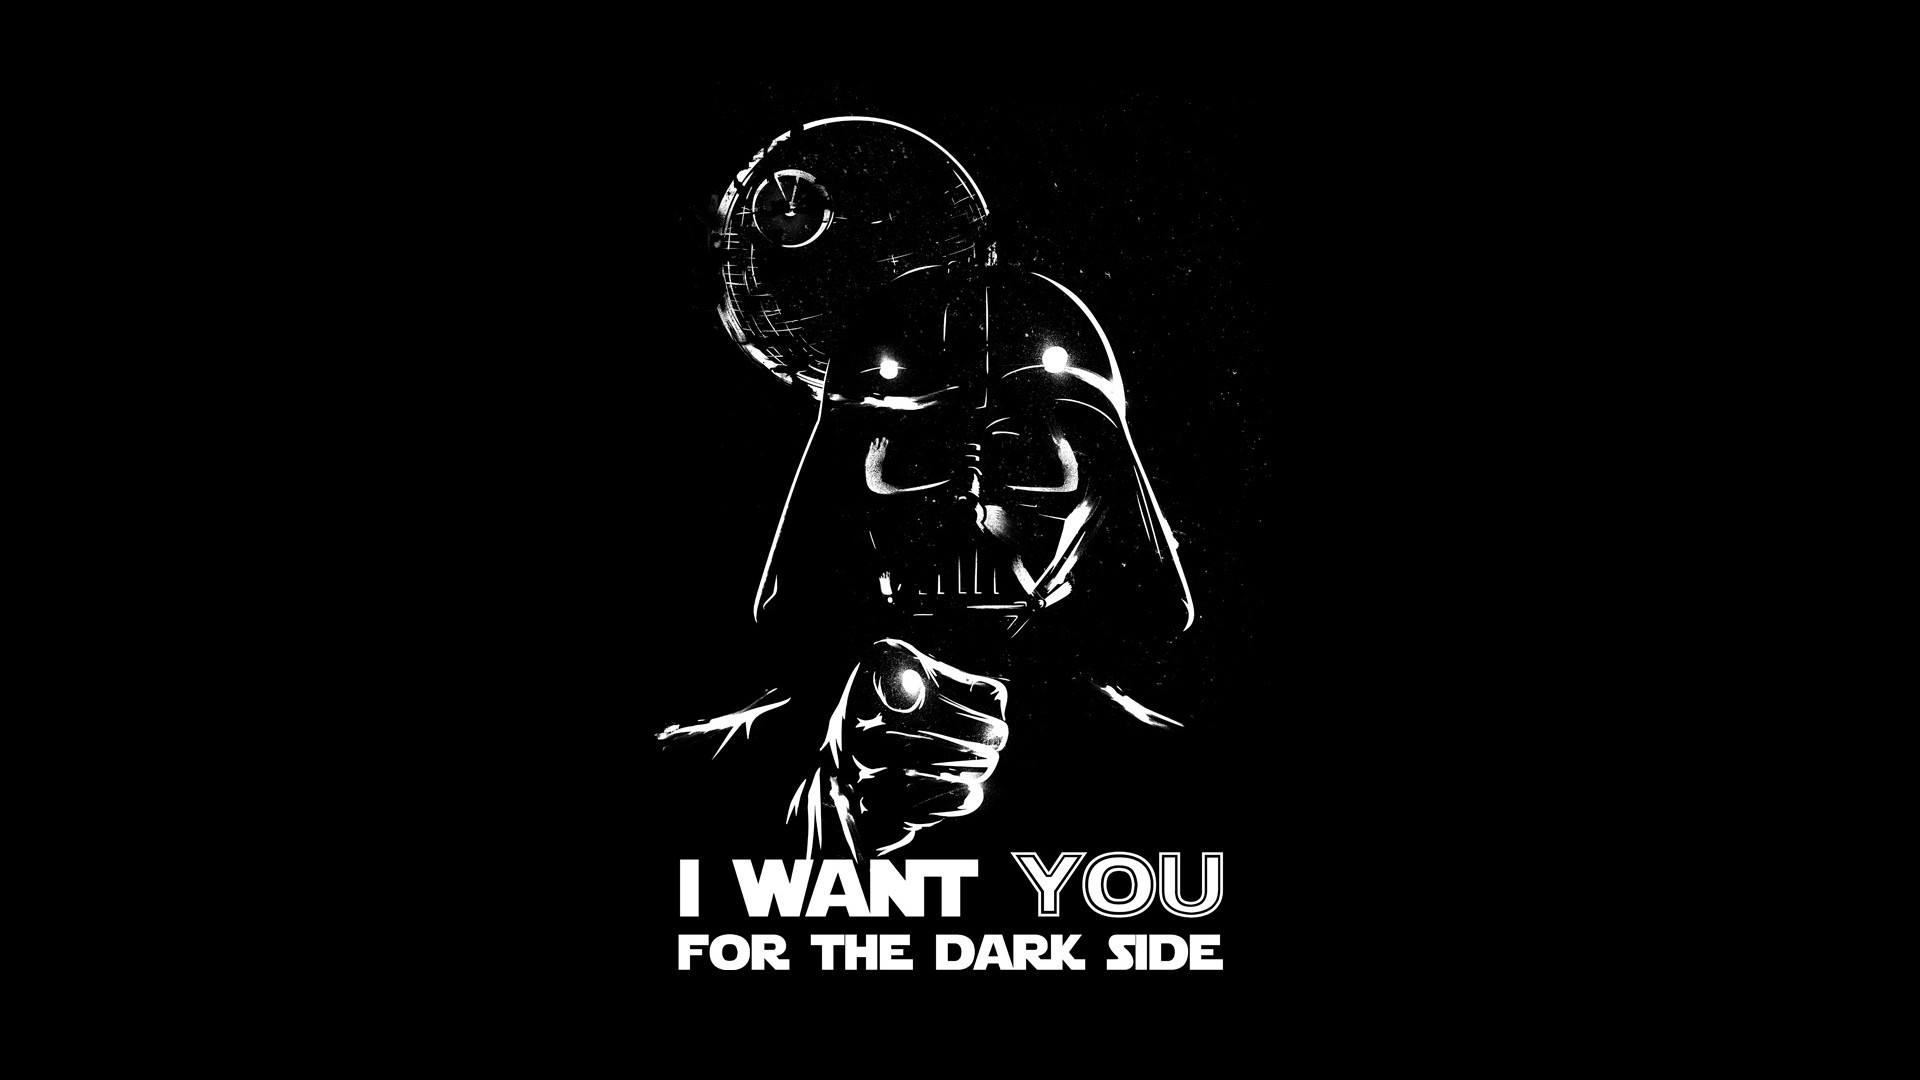 Hd Abstract Wallpapers For Iphone 5 Darth Vader Wallpapers Pictures Images